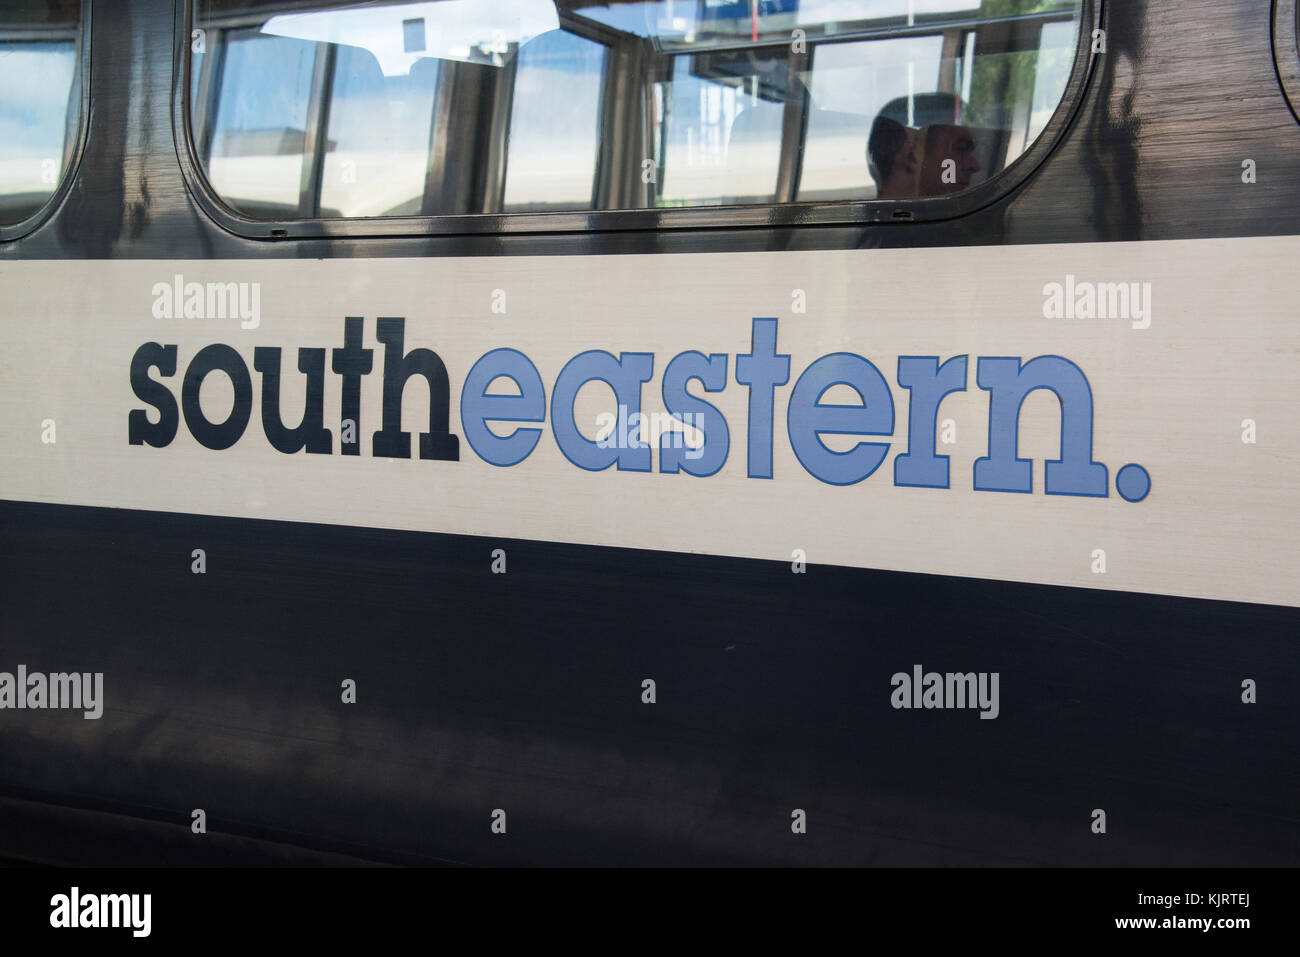 side of Southeastern train with logo. - Stock Image